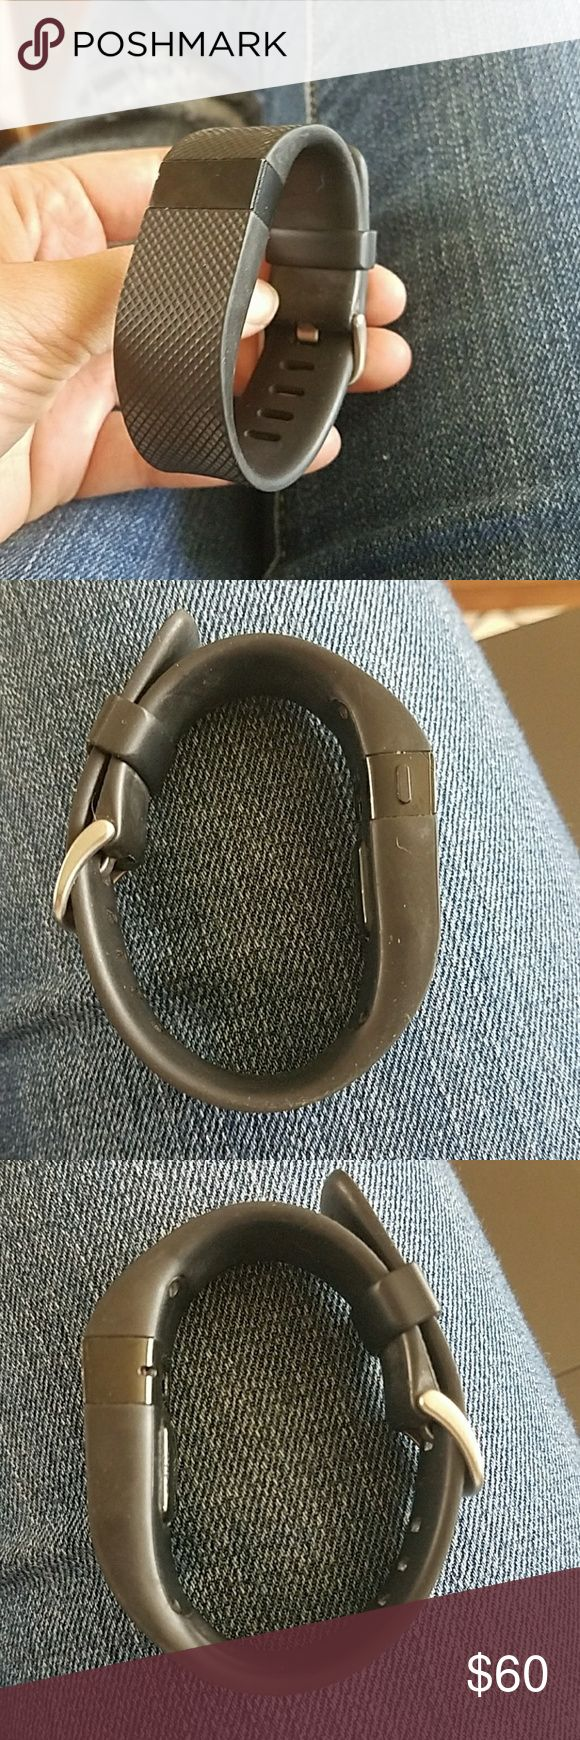 Fitbit Charge HR Small W/ Charger Used / great condition Fitbit Charge. Size small. Make an offer! Works perfectly and comes with charger. I don't have the original box anymore, sorry. fitbit Accessories Watches